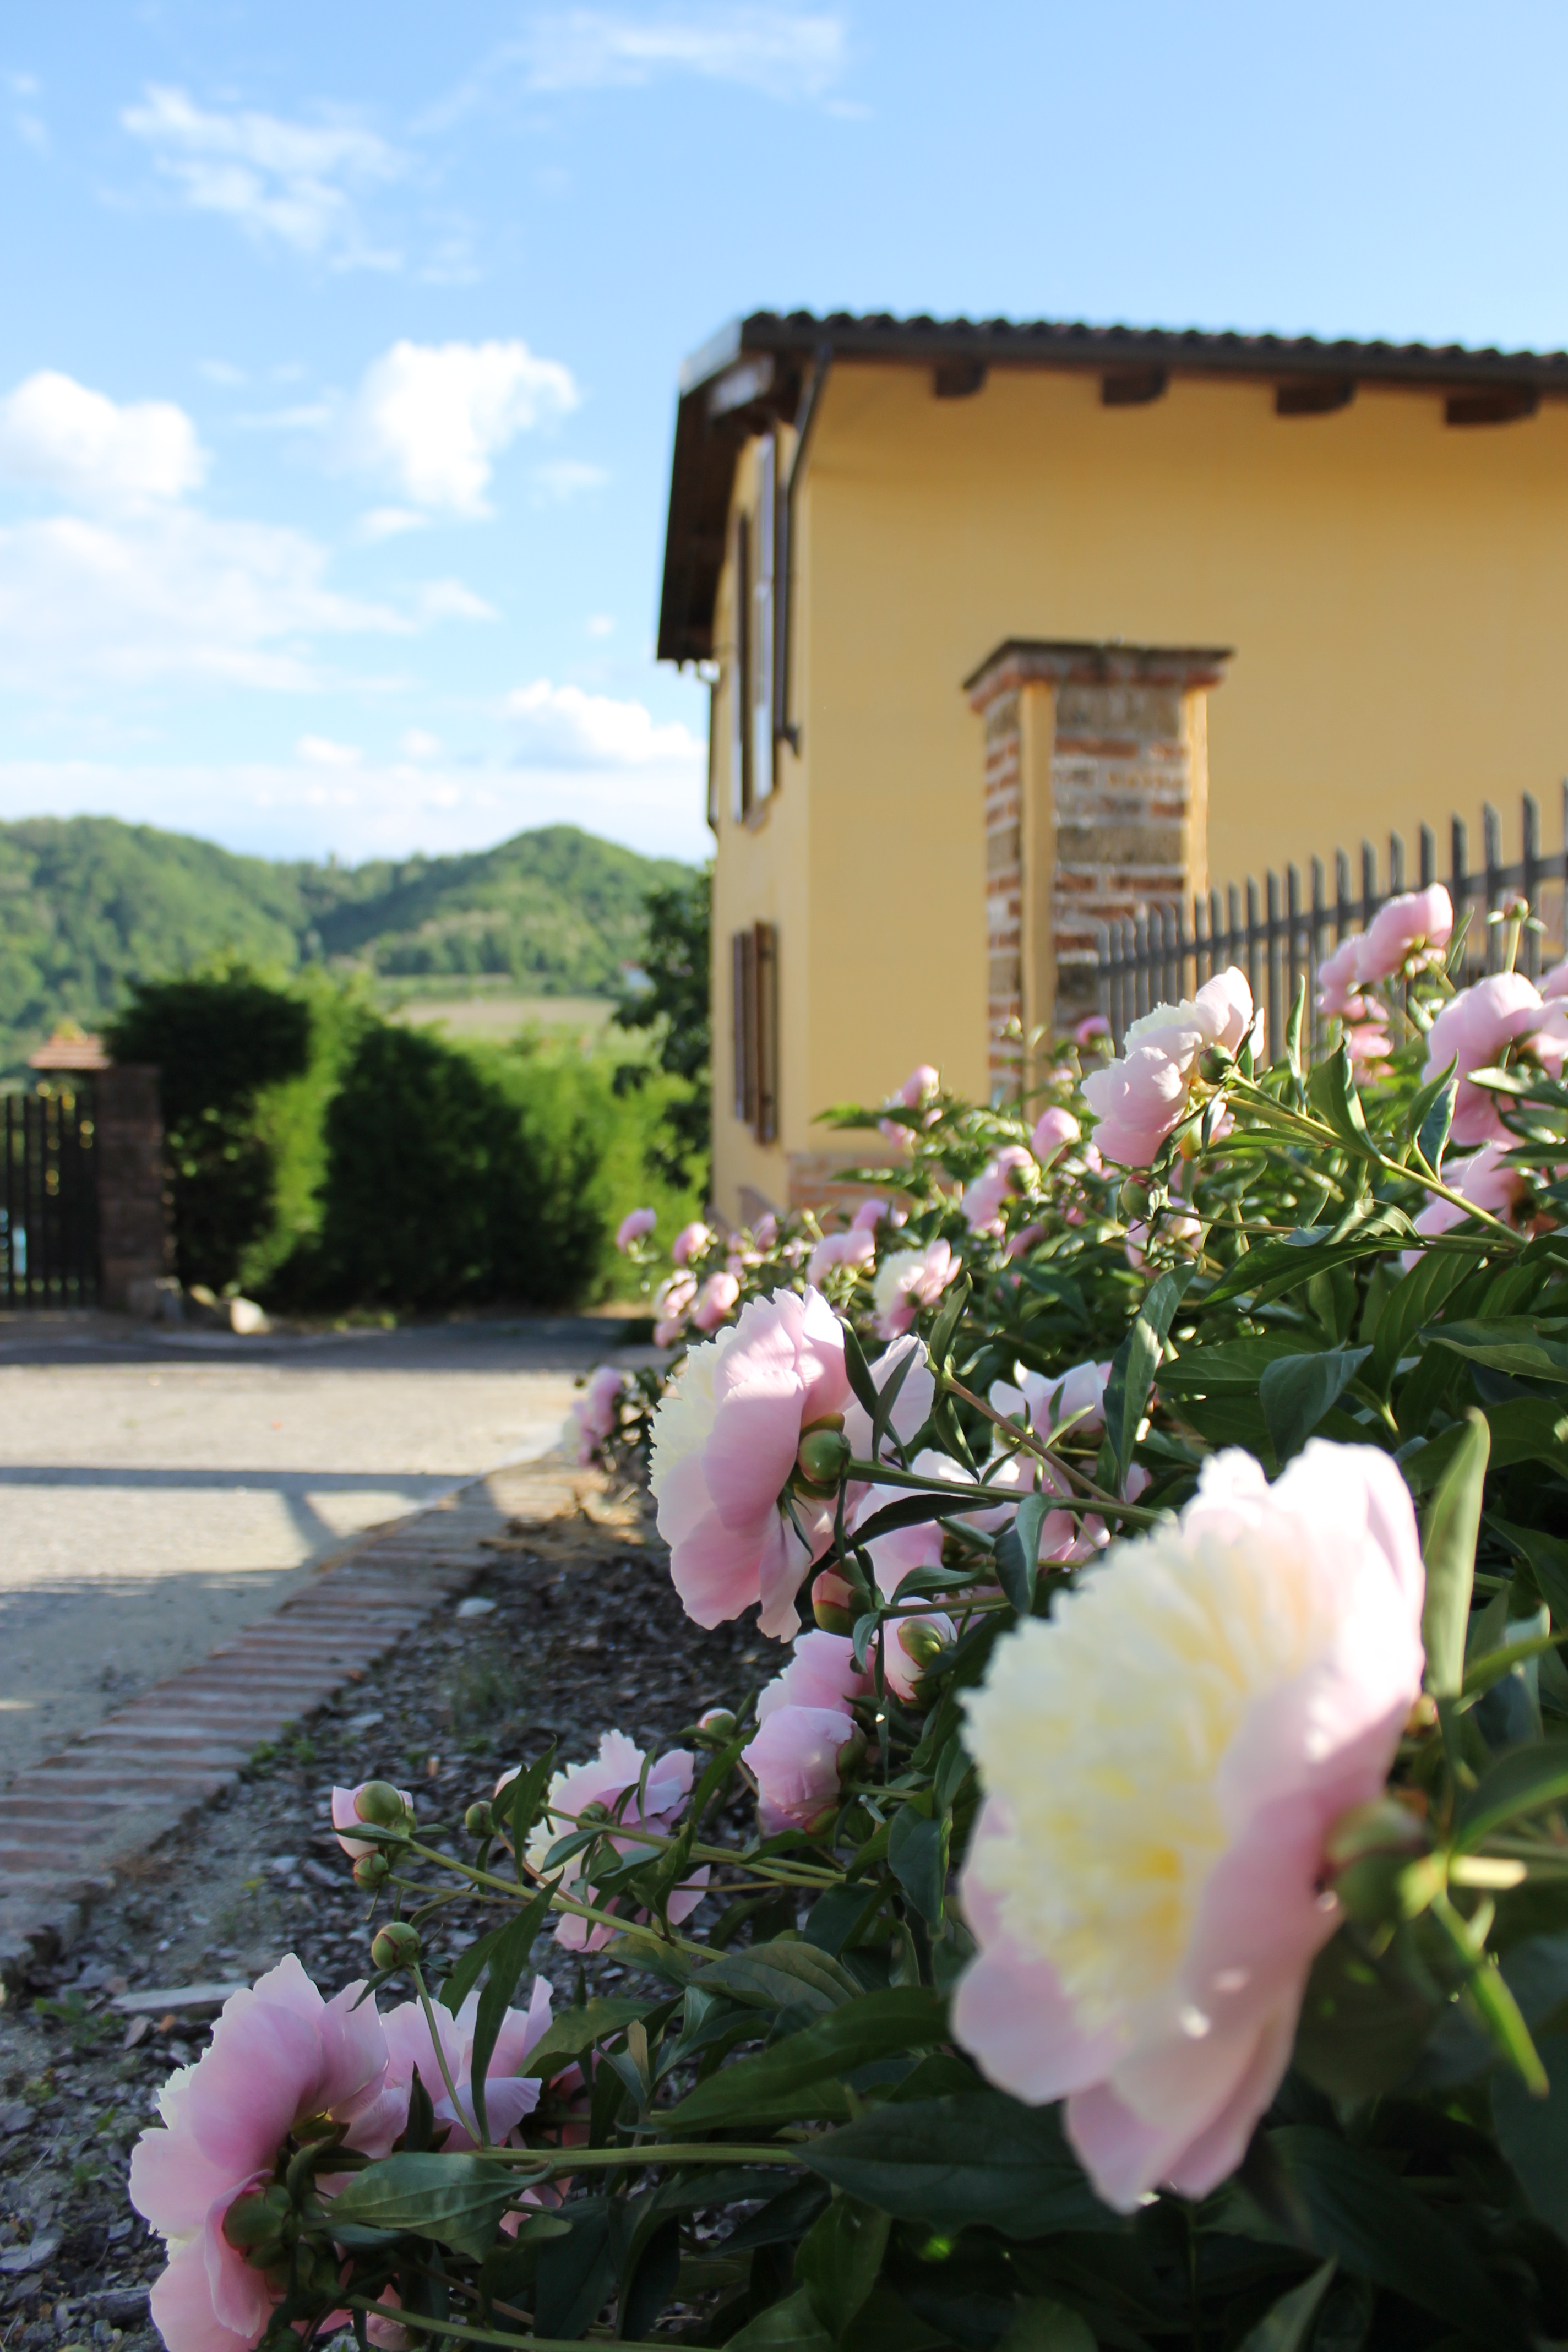 Barbera S Home Charme In Monferrato With Pool Houses For Rent In Camino Piemonte Italy